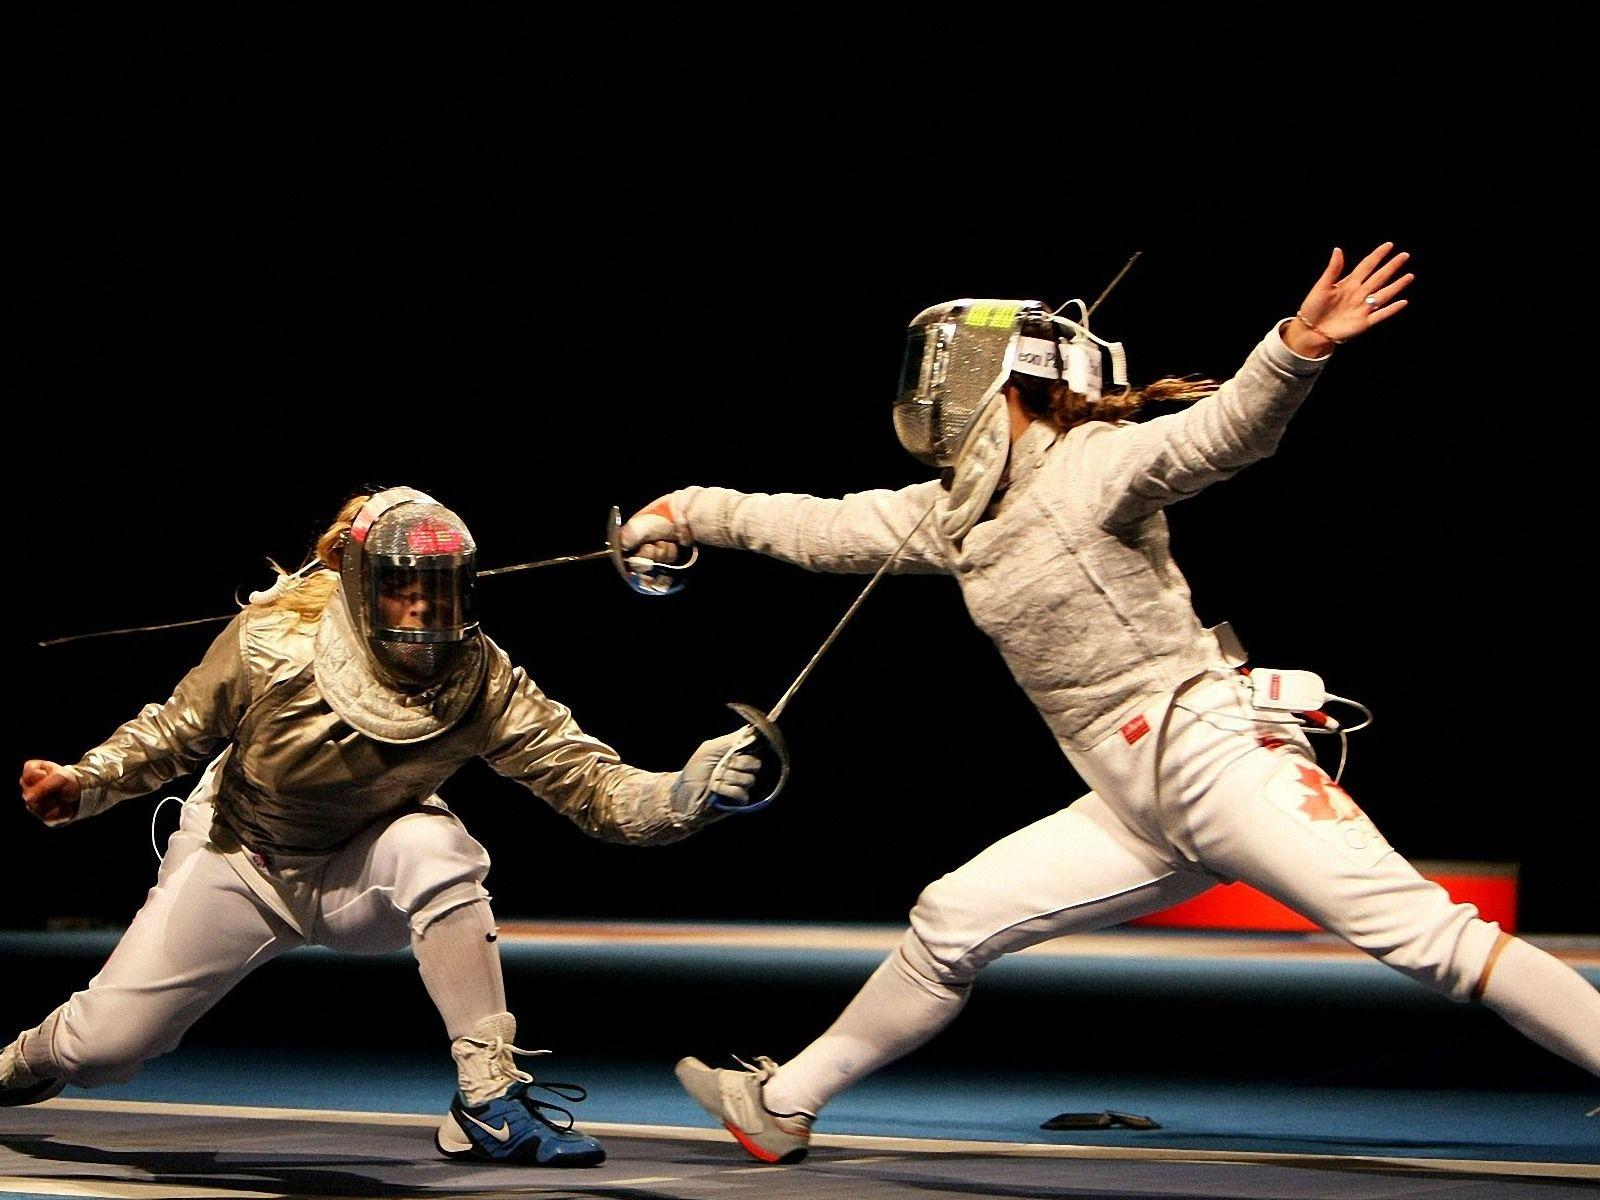 HD Wallpapers Fencing | Point Of No Return | Pinterest | Fences